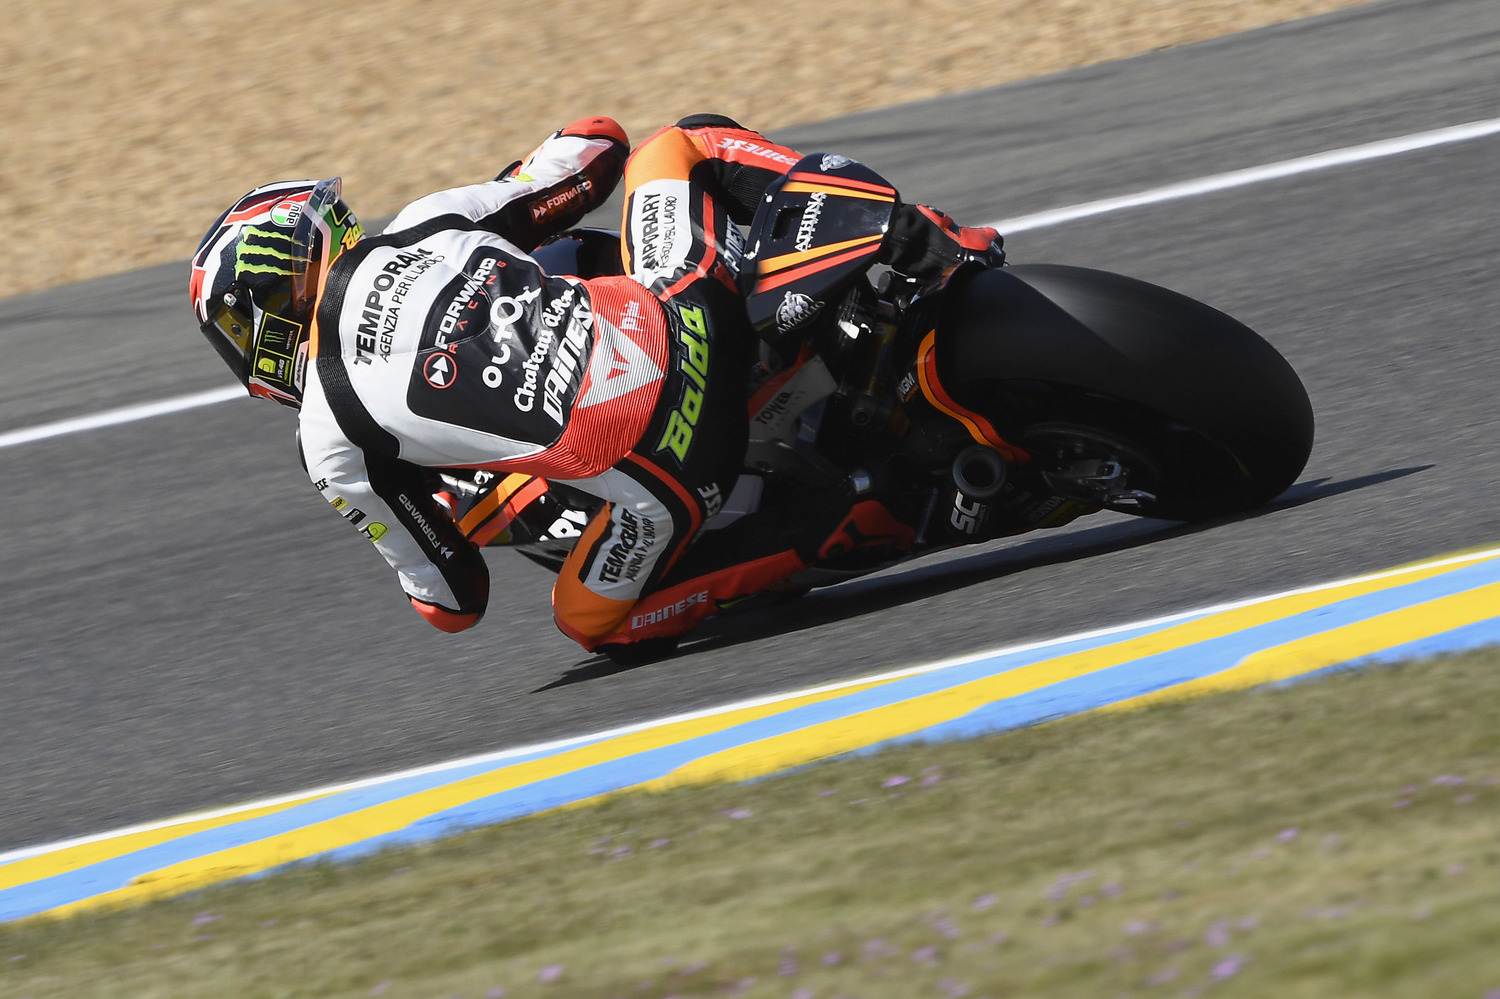 Baldassarri first of the Italians, Marini first time with Moto2 at LeMans